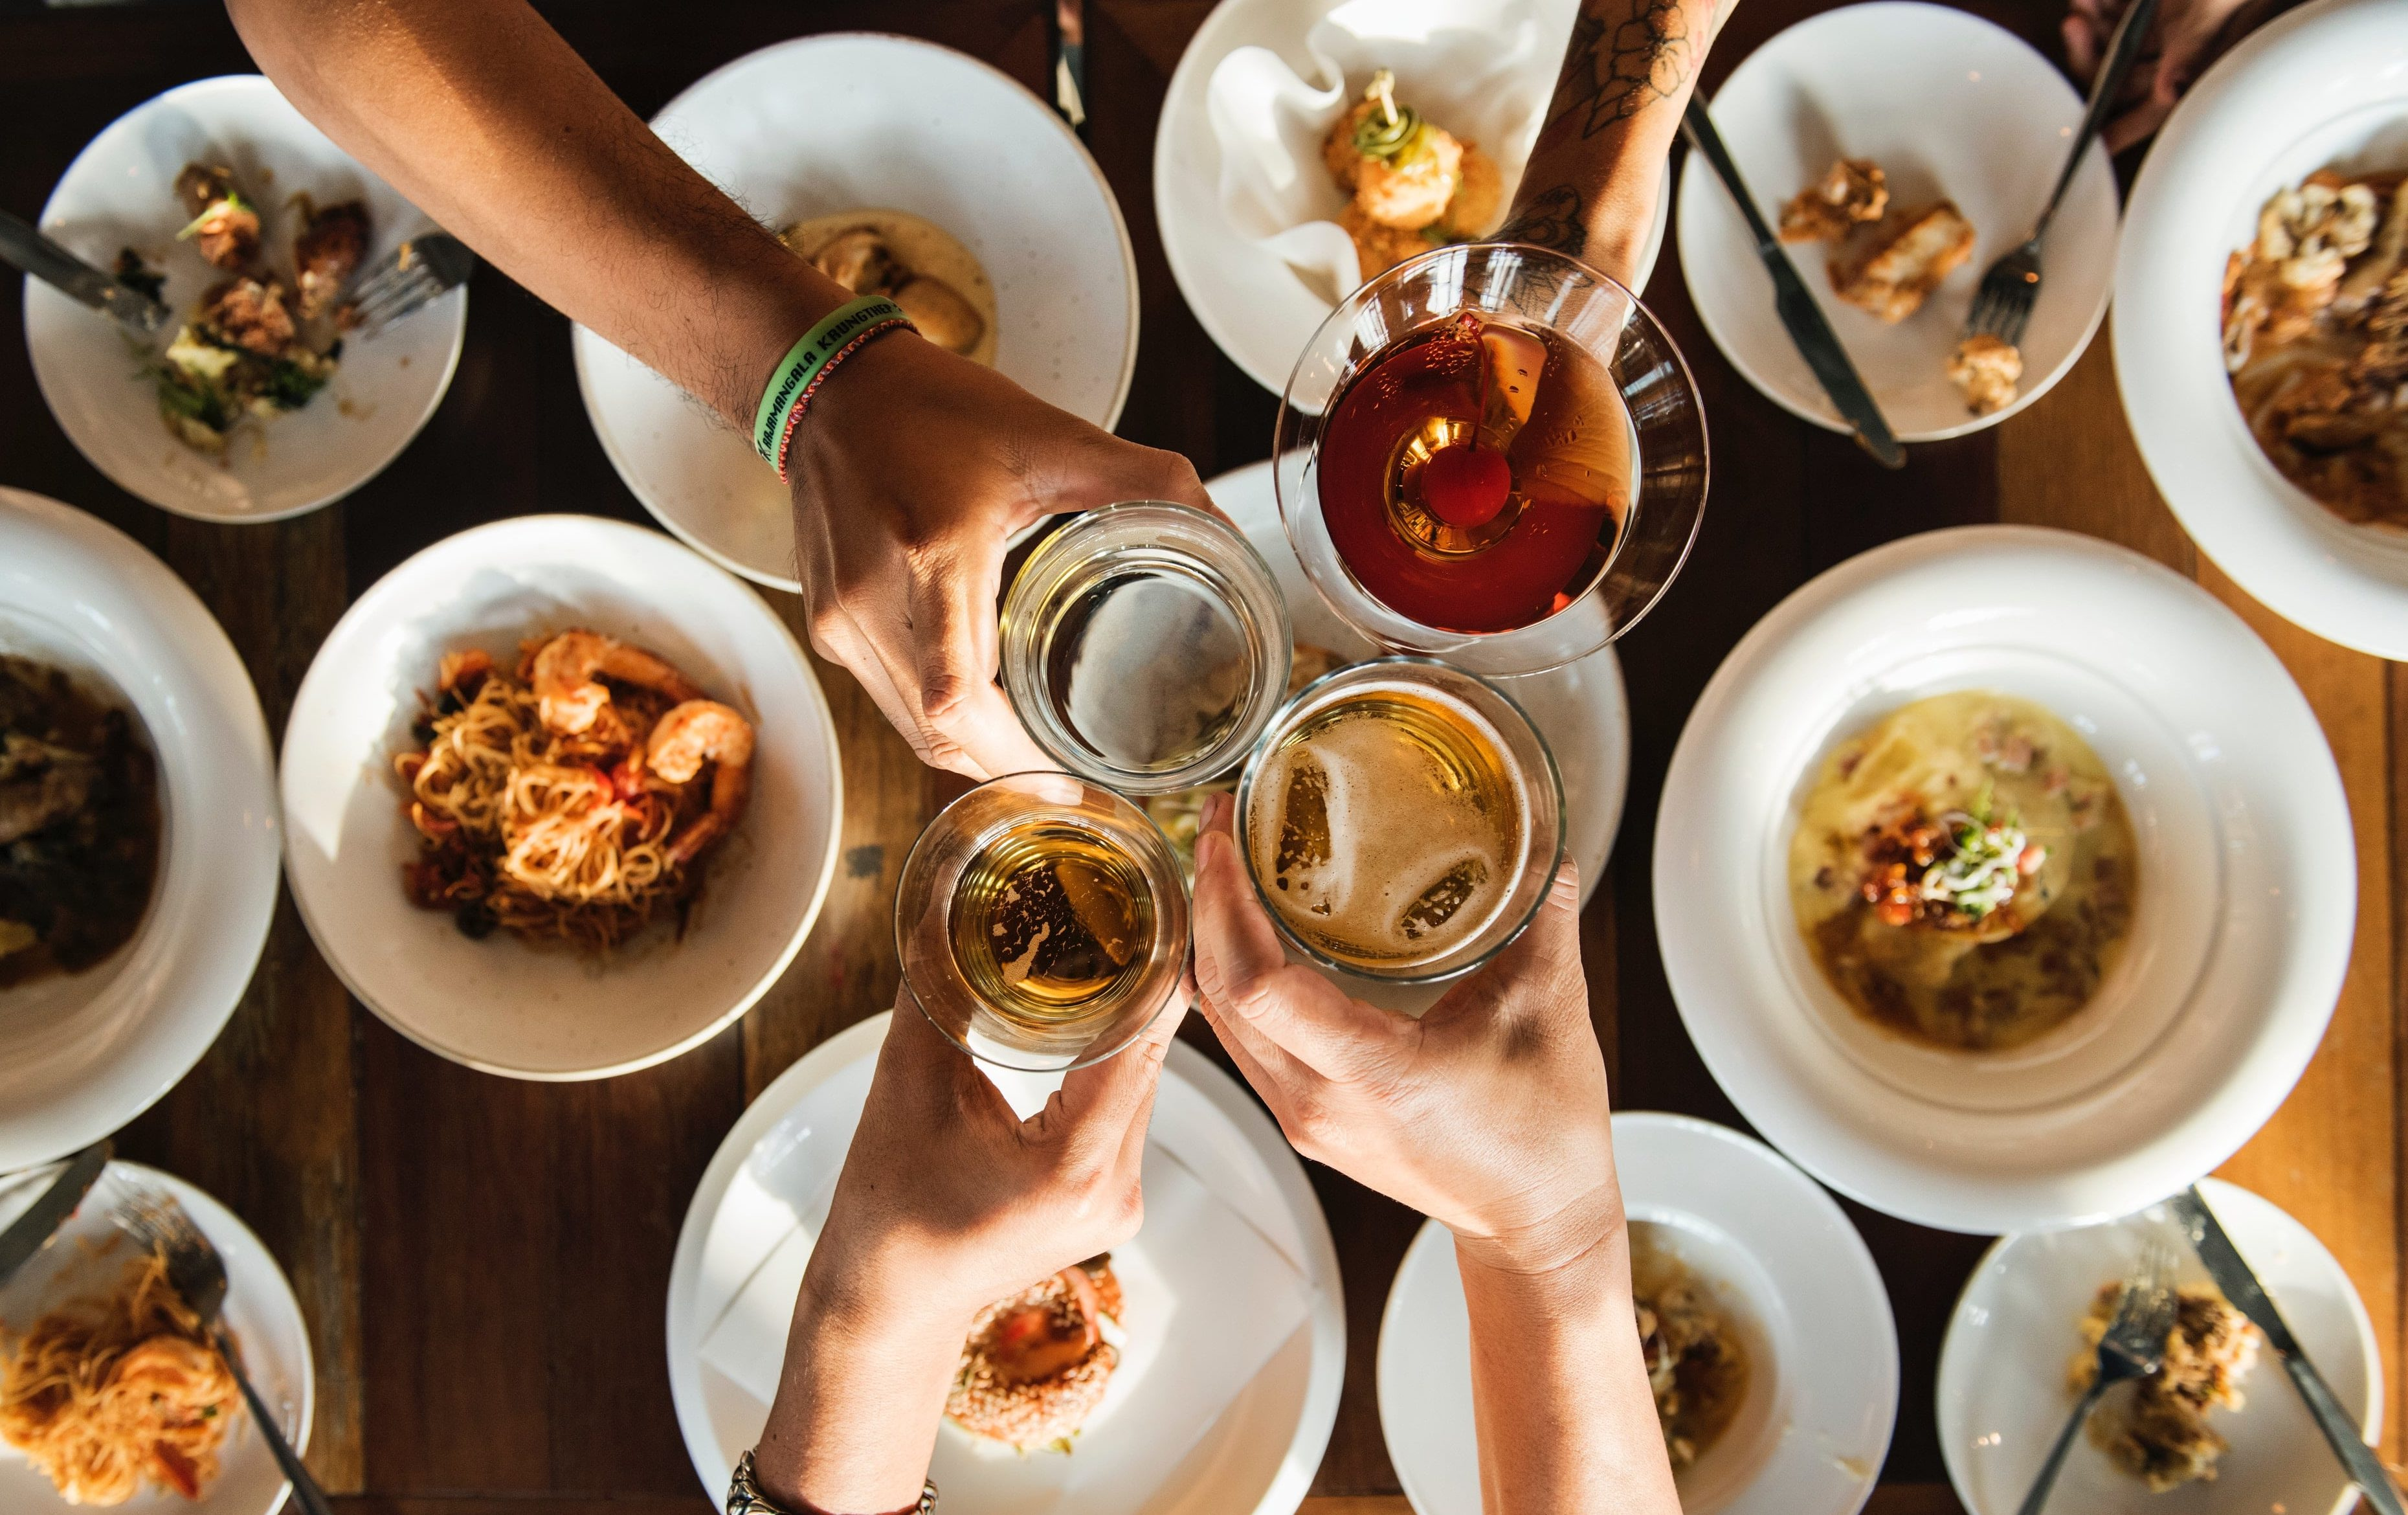 How to pair wine with Thai food like a pro